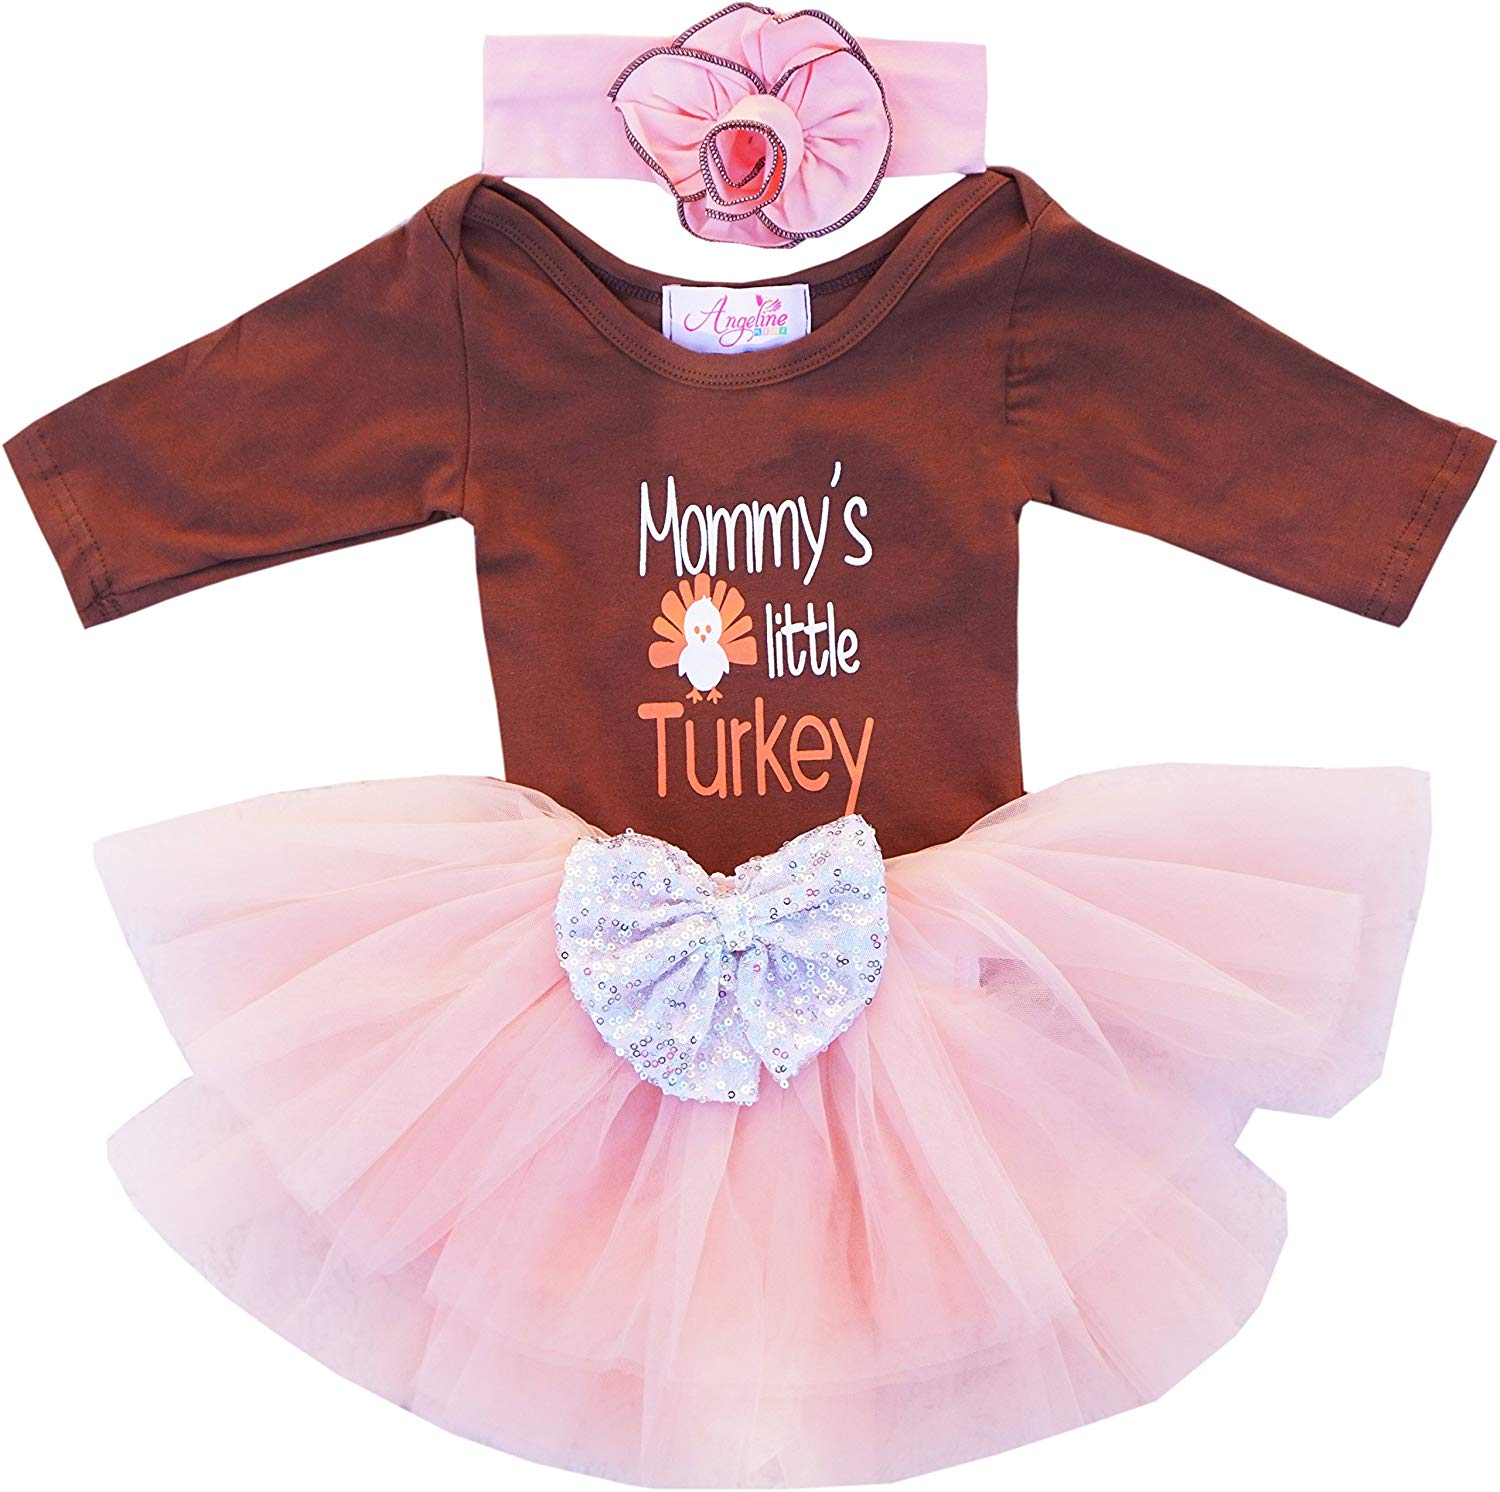 f3832618eabf Get Quotations · Angeline Boutique Clothing Baby Thanksgiving Turkey  Bodysuit Tutu Romper Dress Set